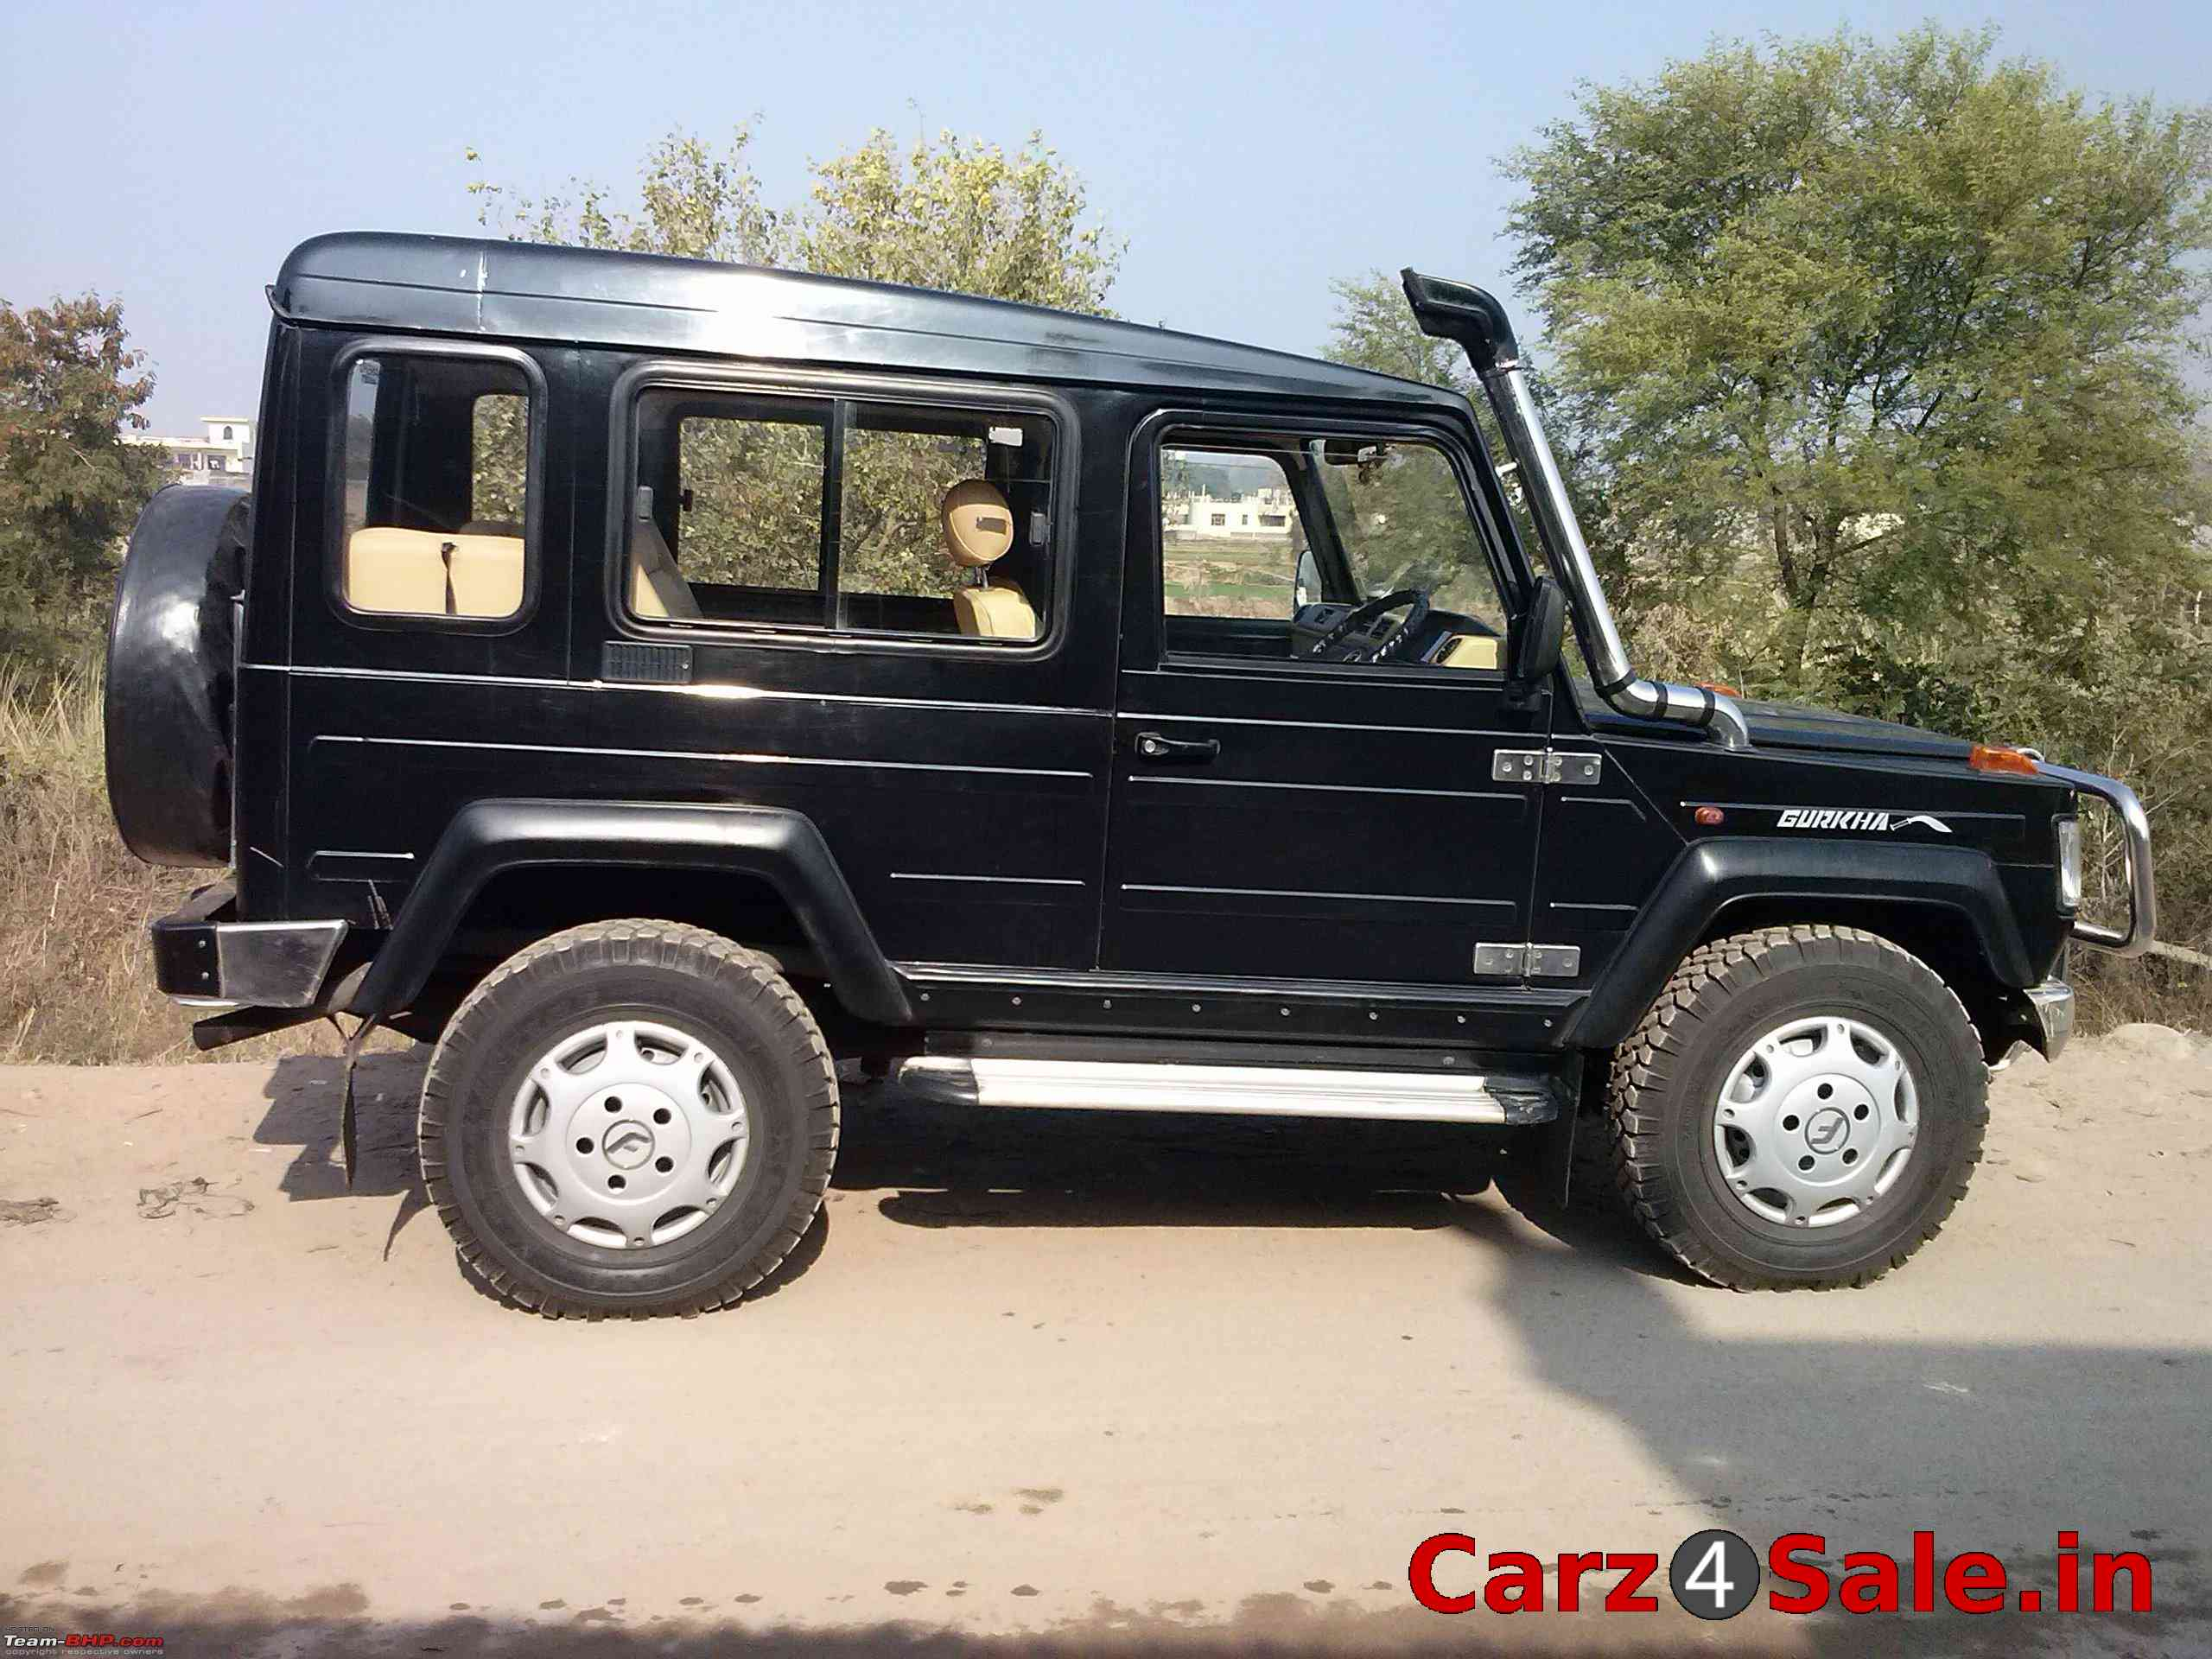 Force Gurkha 4X4 SUV